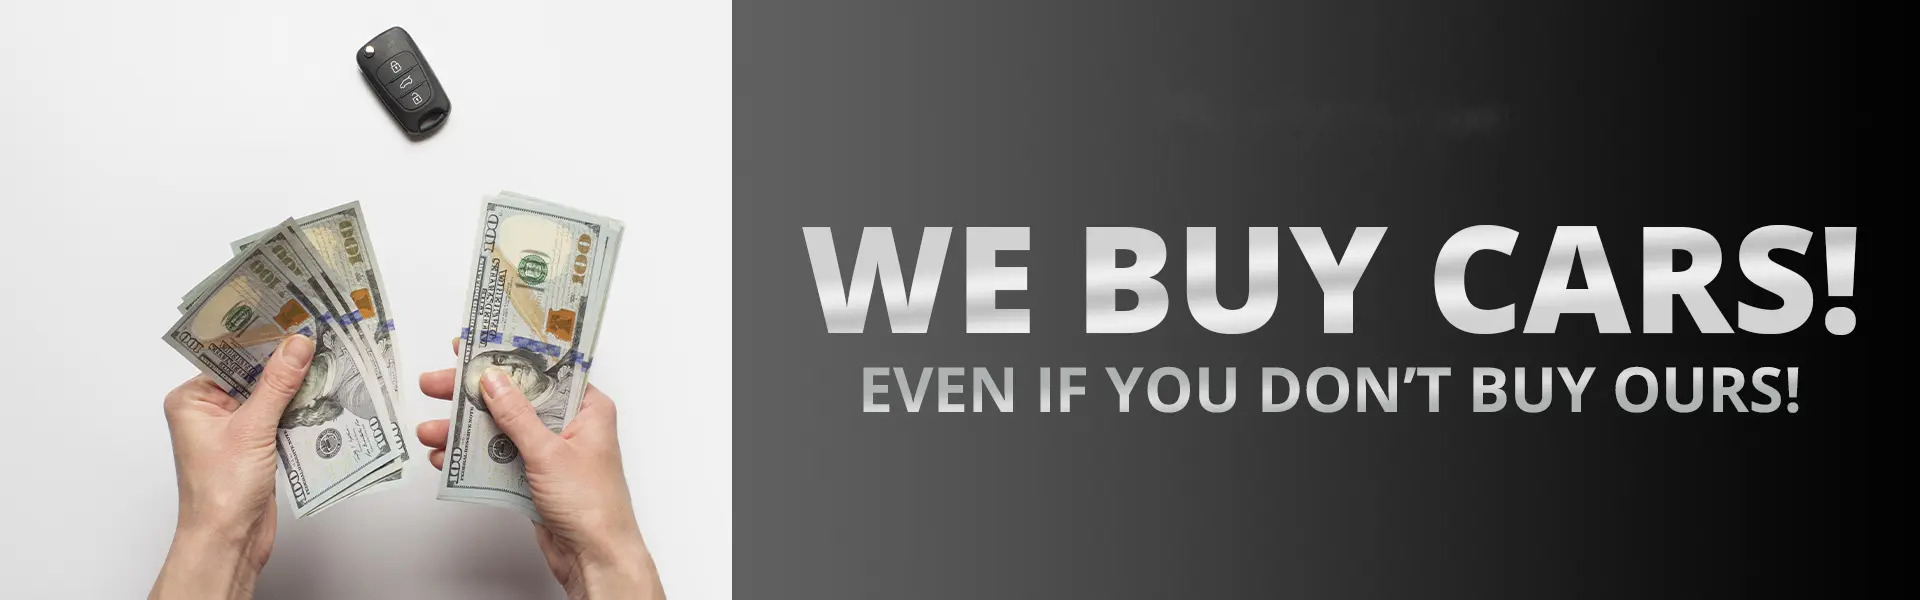 We buy cars! Even if you don't buy ours